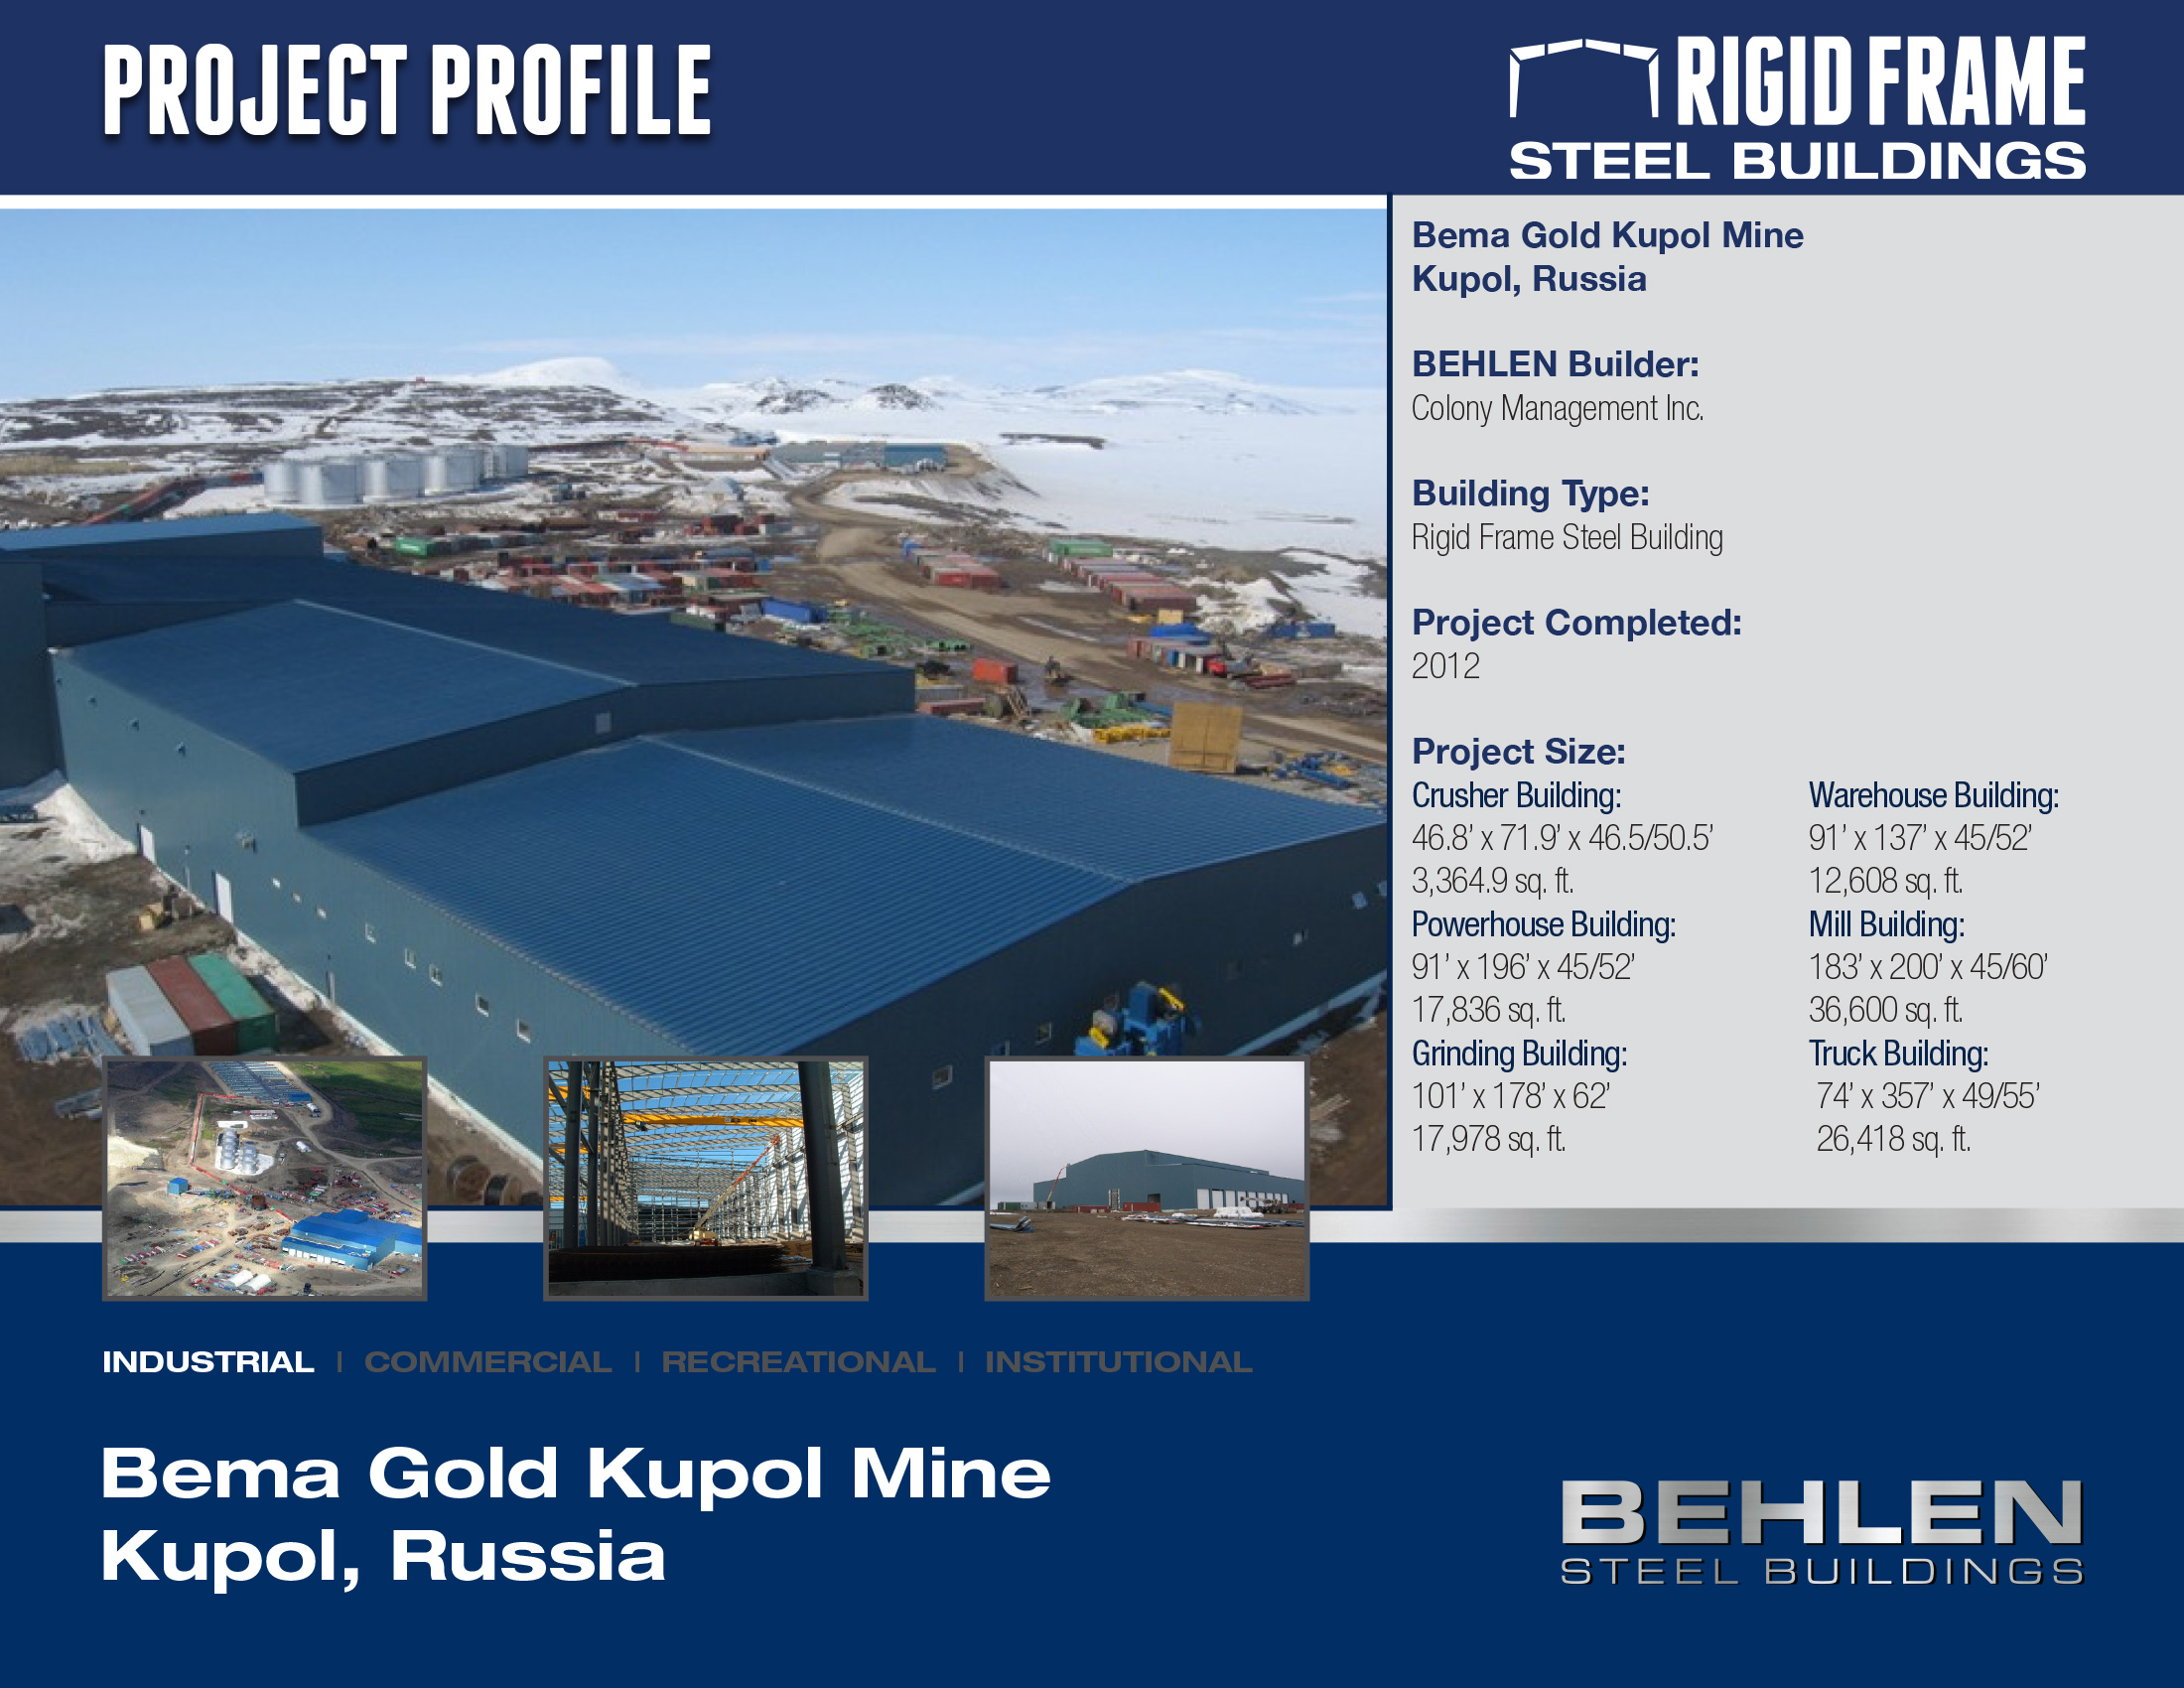 Bema Gold Kupol Mine